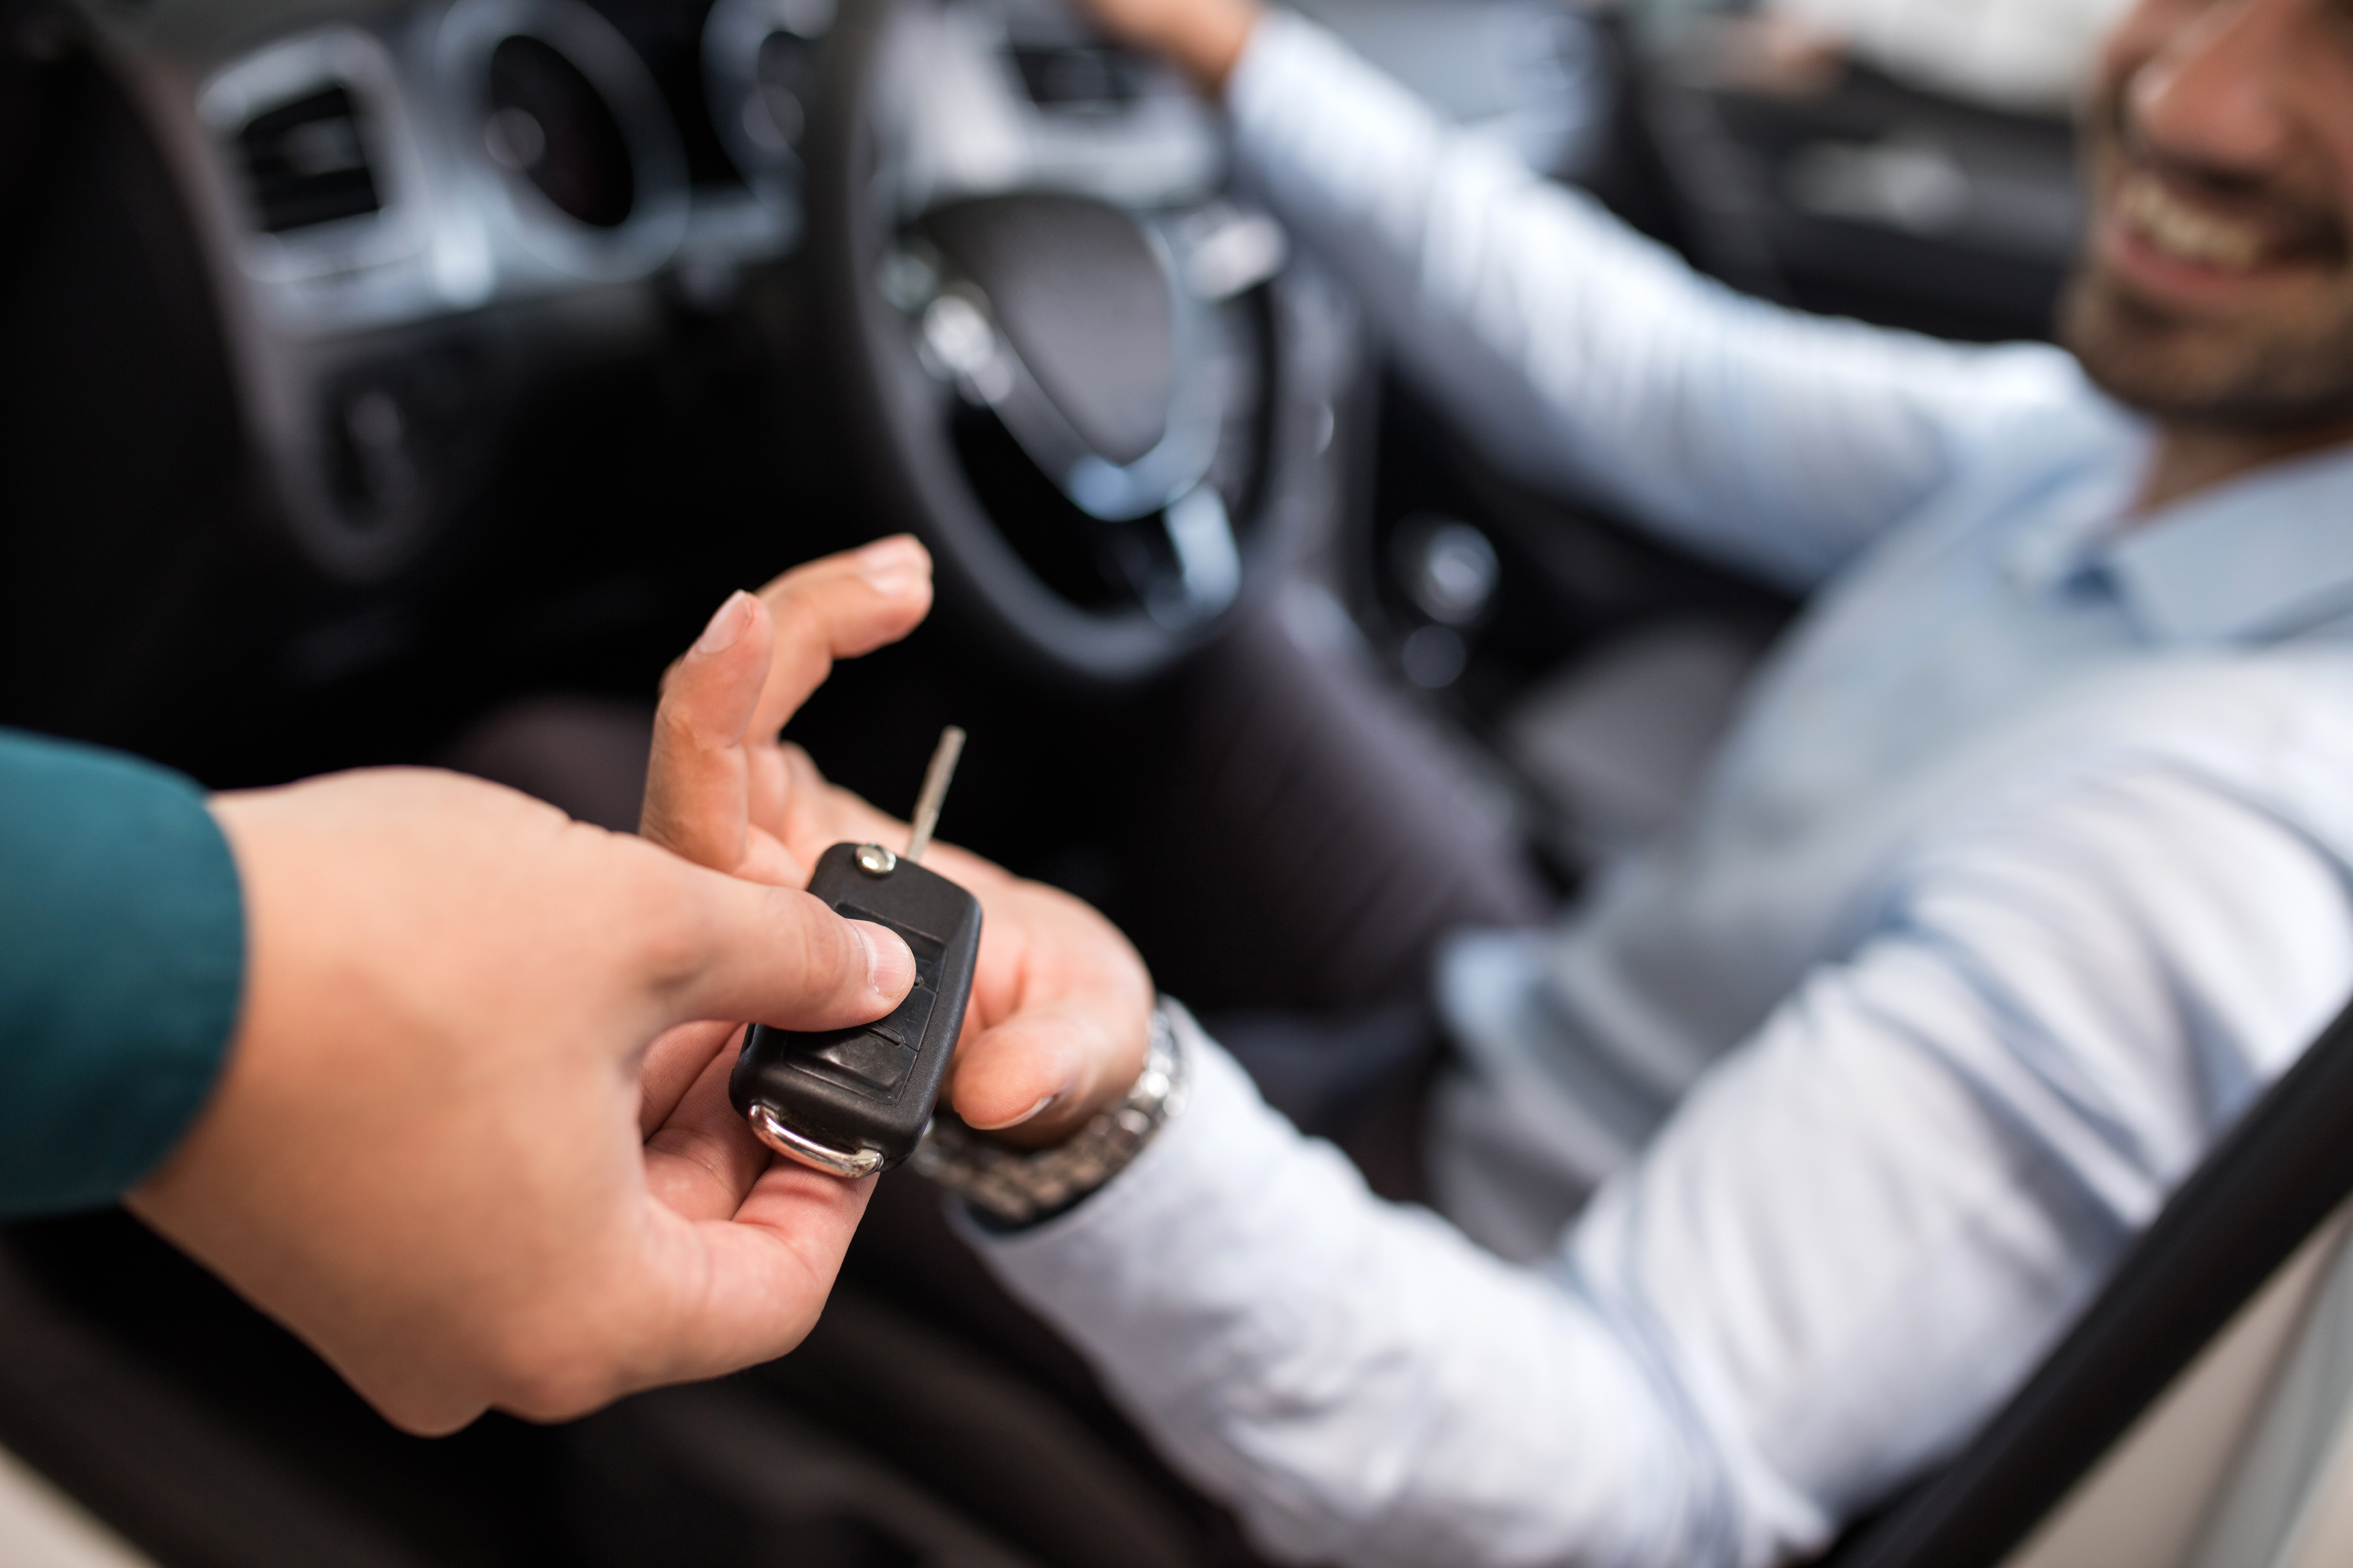 GettyImages-628453996_handing driver key